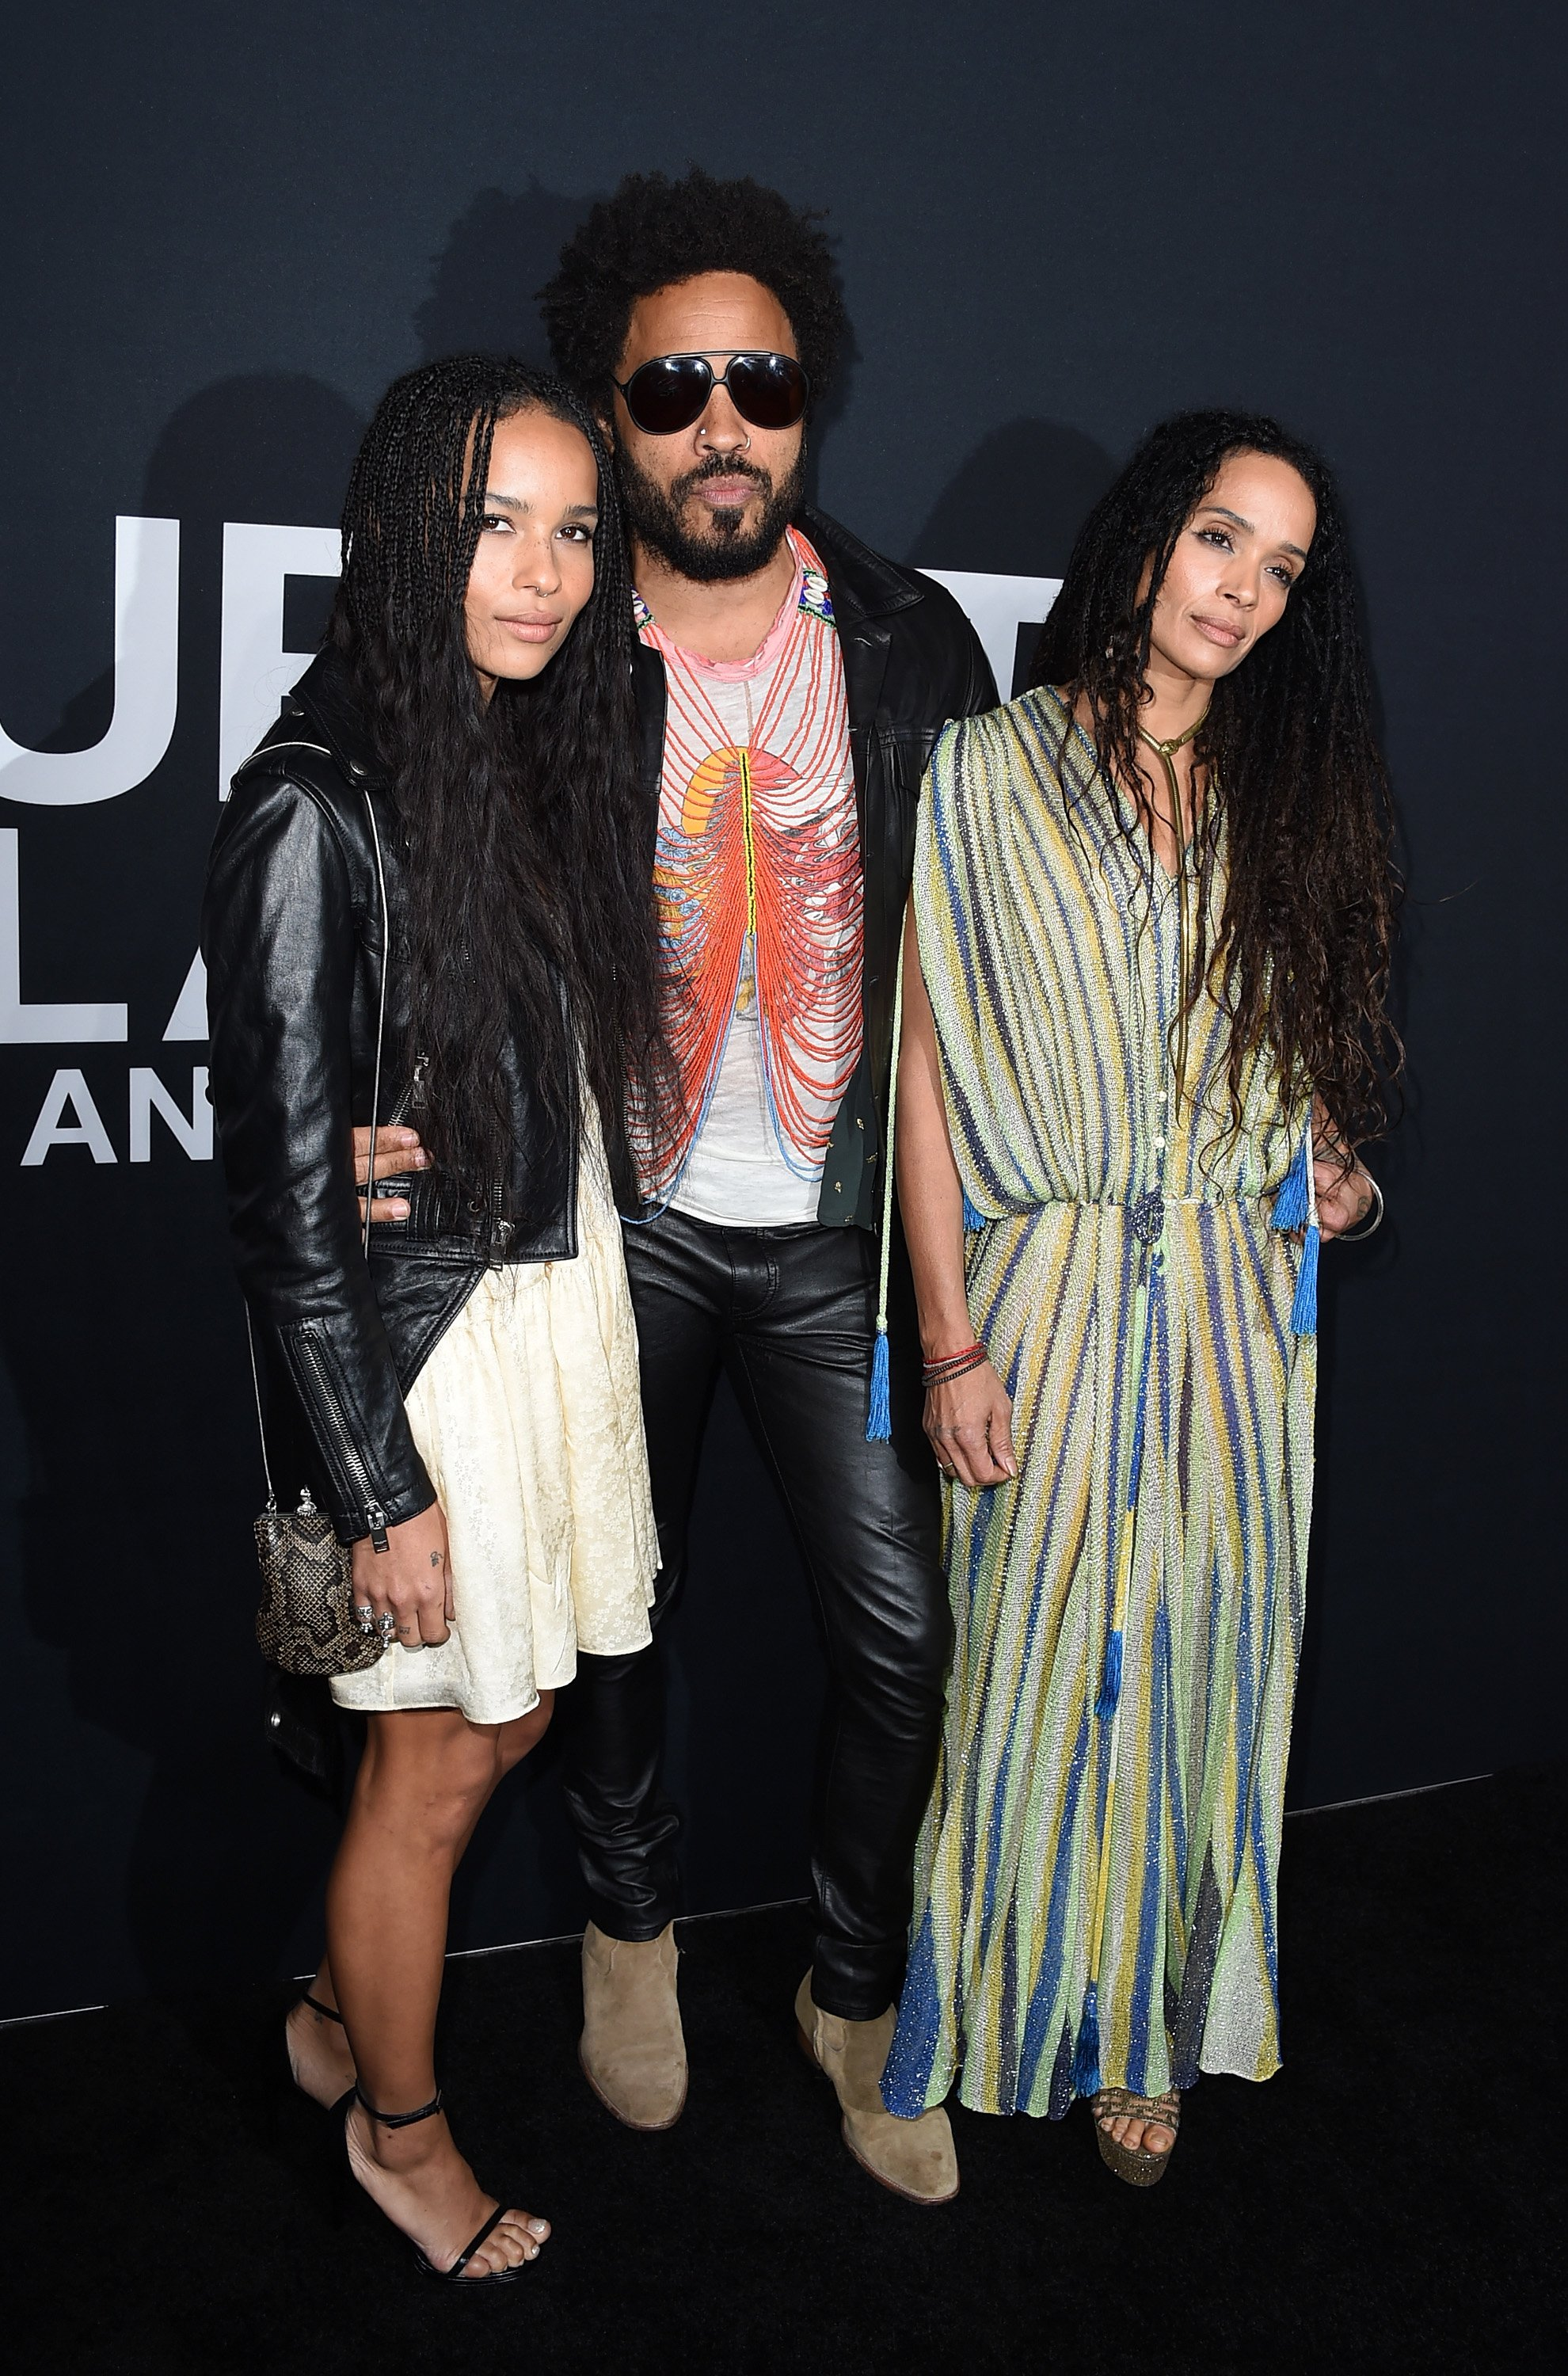 Lenny Kravitz with daughter Zoe and ex-wife Lisa Bonet attend the Saint Laurent Show in Los Angeles, California on Feburary 10, 2016 | Photo: Getty Images